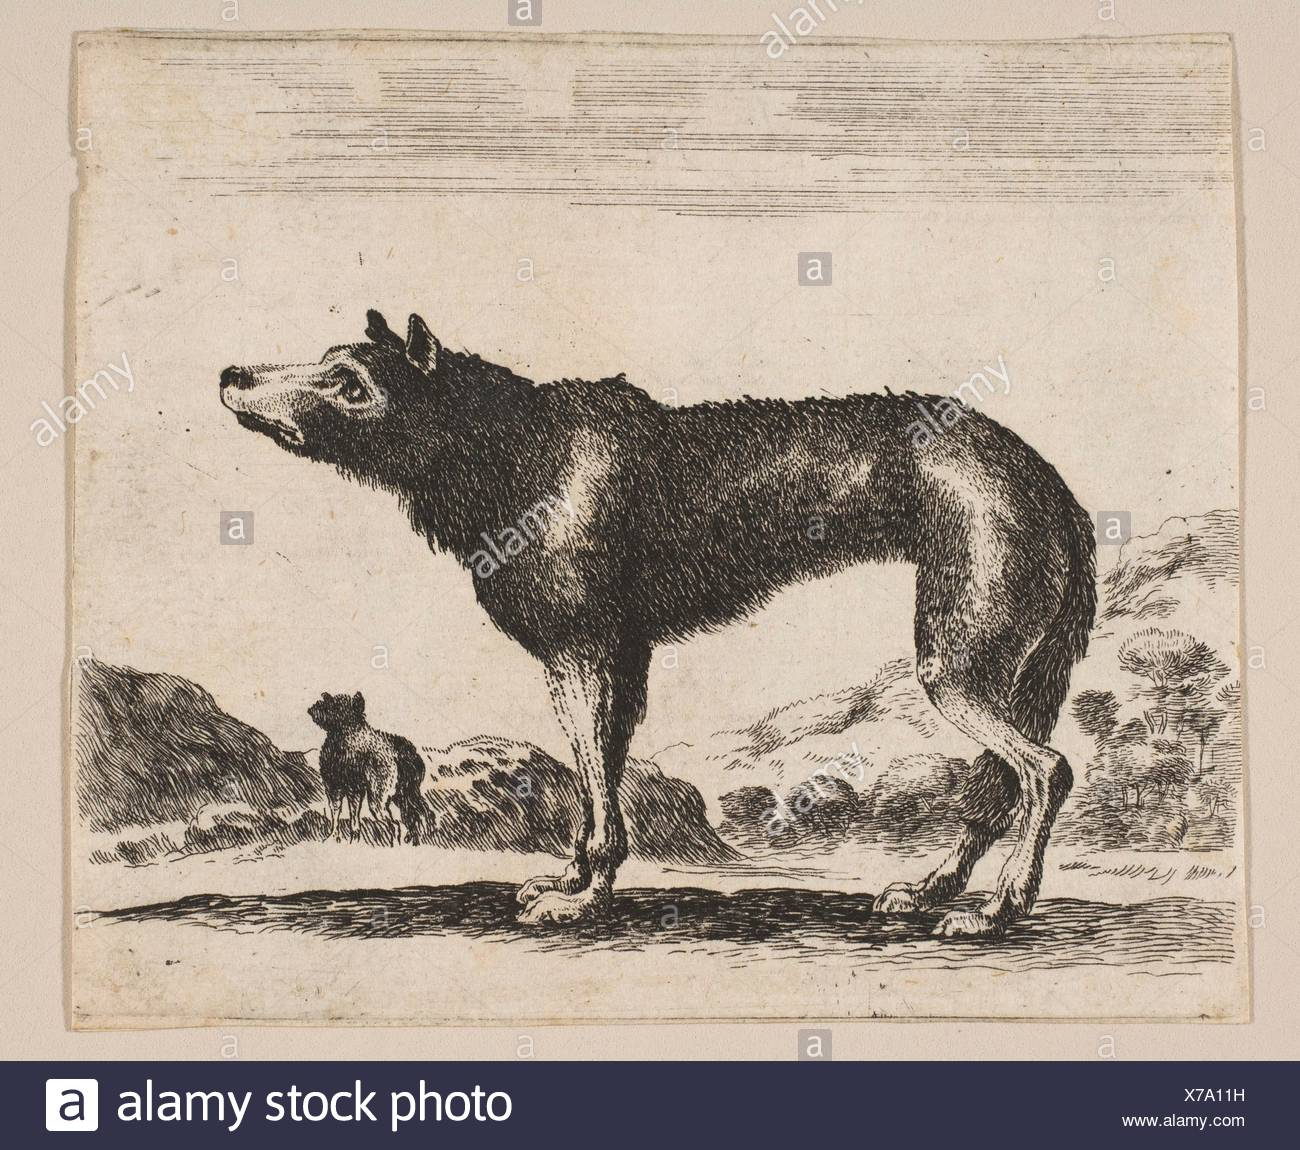 Plate 20: wolf, from 'Various animals' (Diversi animali). Series/Portfolio: 'Various animals' (Diversi animali); Printmaker: Anonymous, 17th century; - Stock Image